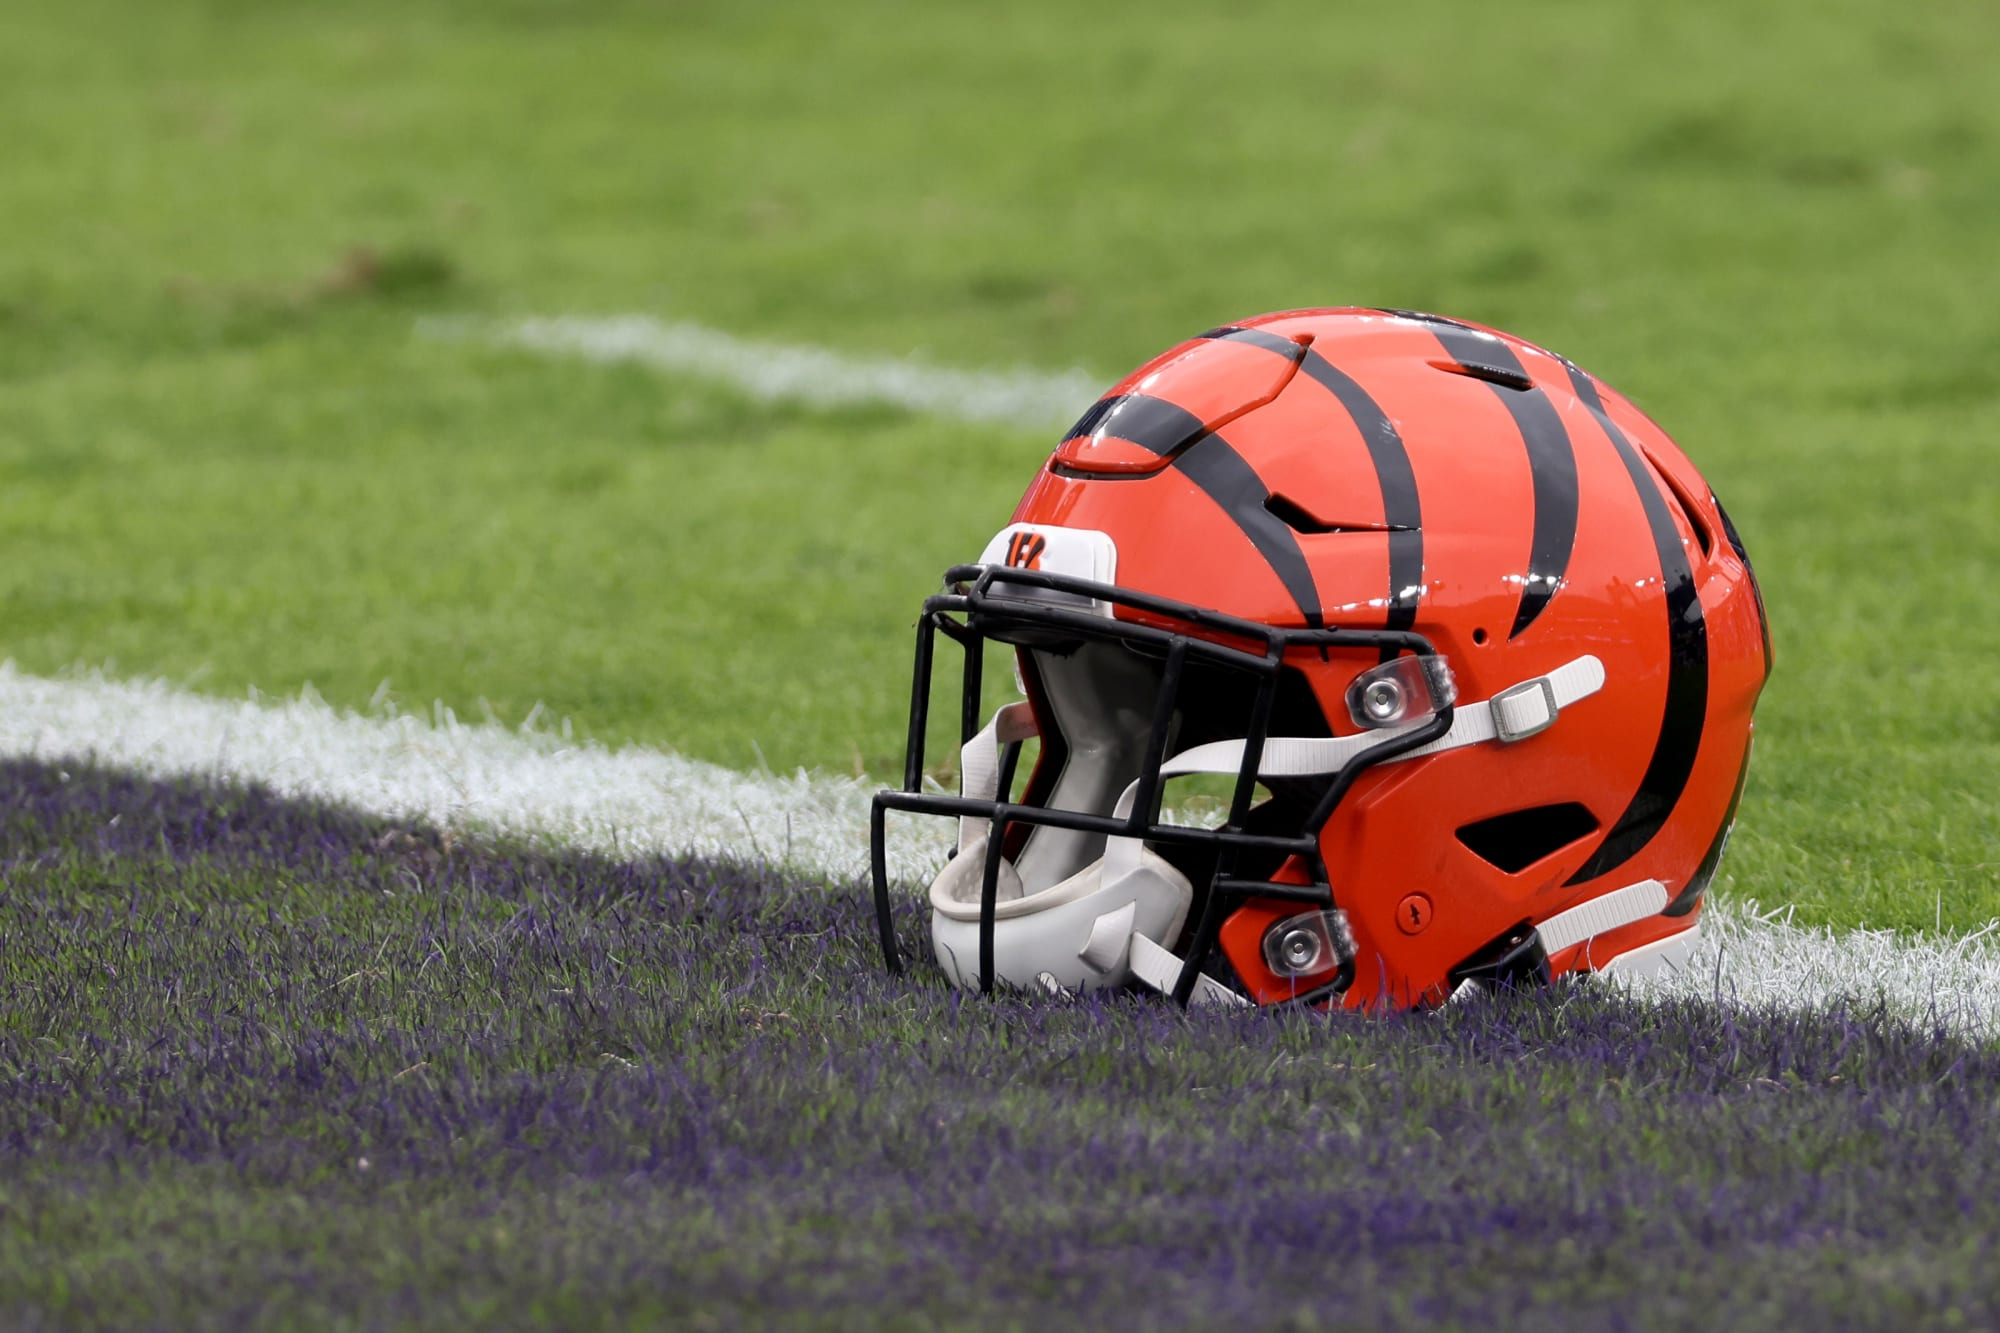 Bengals: One former and one current Bengal make inauspicious list